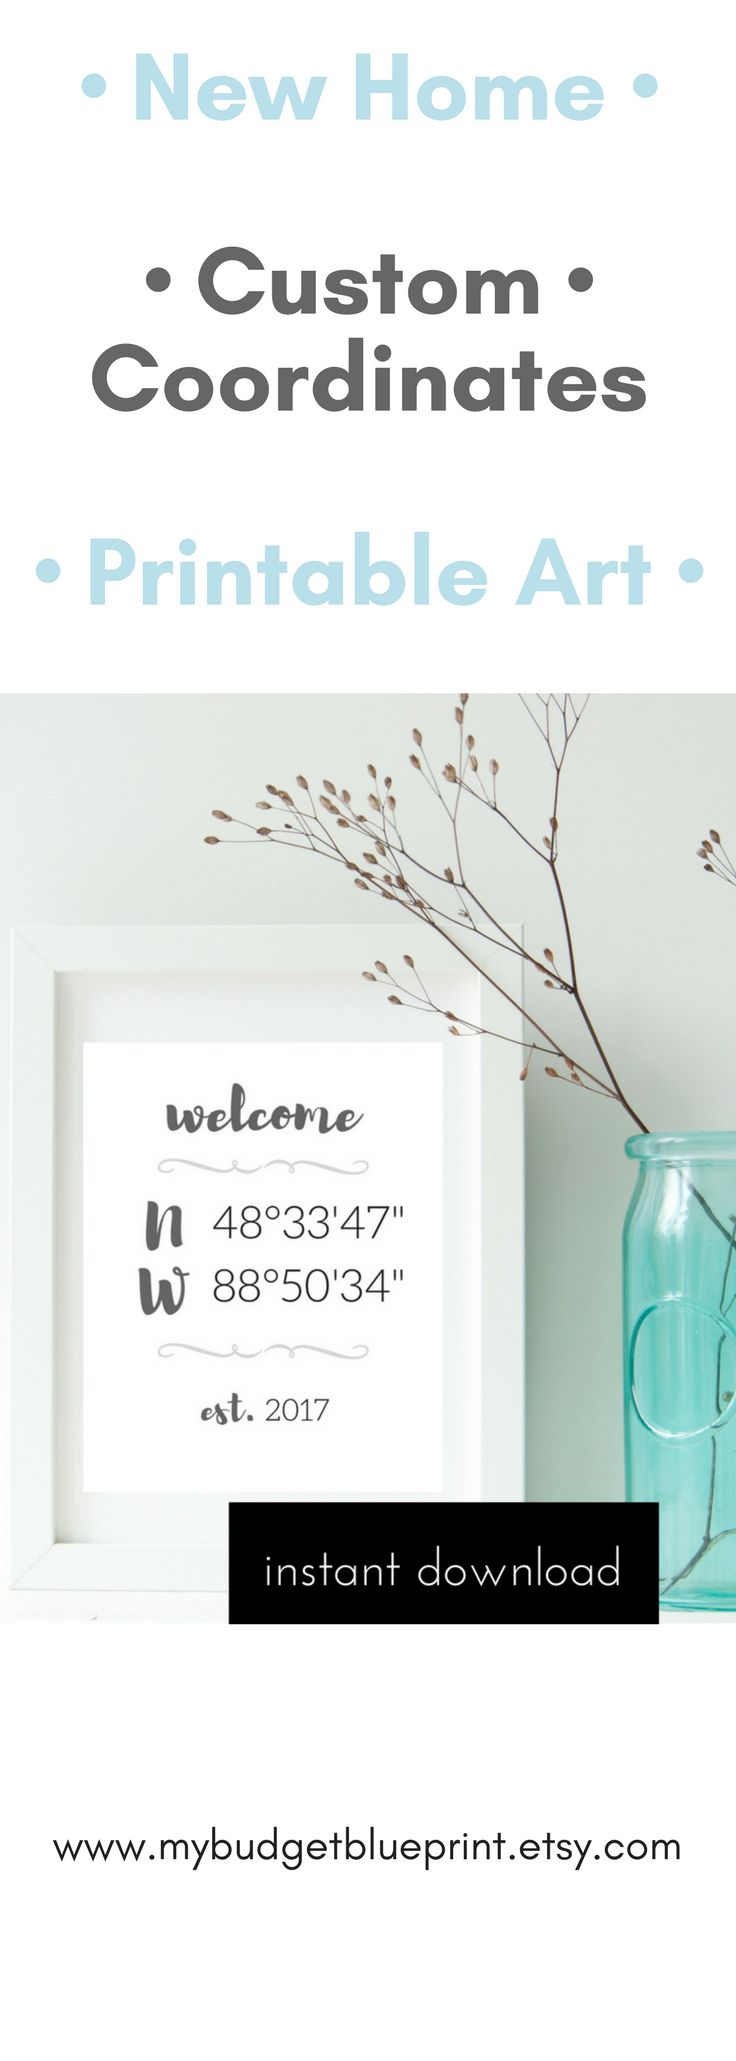 Custom coordinates make for a great addition to your gallery wall, as a new home housewarming gift or as beautiful decor in your guesthouse. Printable art is so easy and adds the flexibility to print from home or send to a print lab to add the personalized touch to your home decor today.